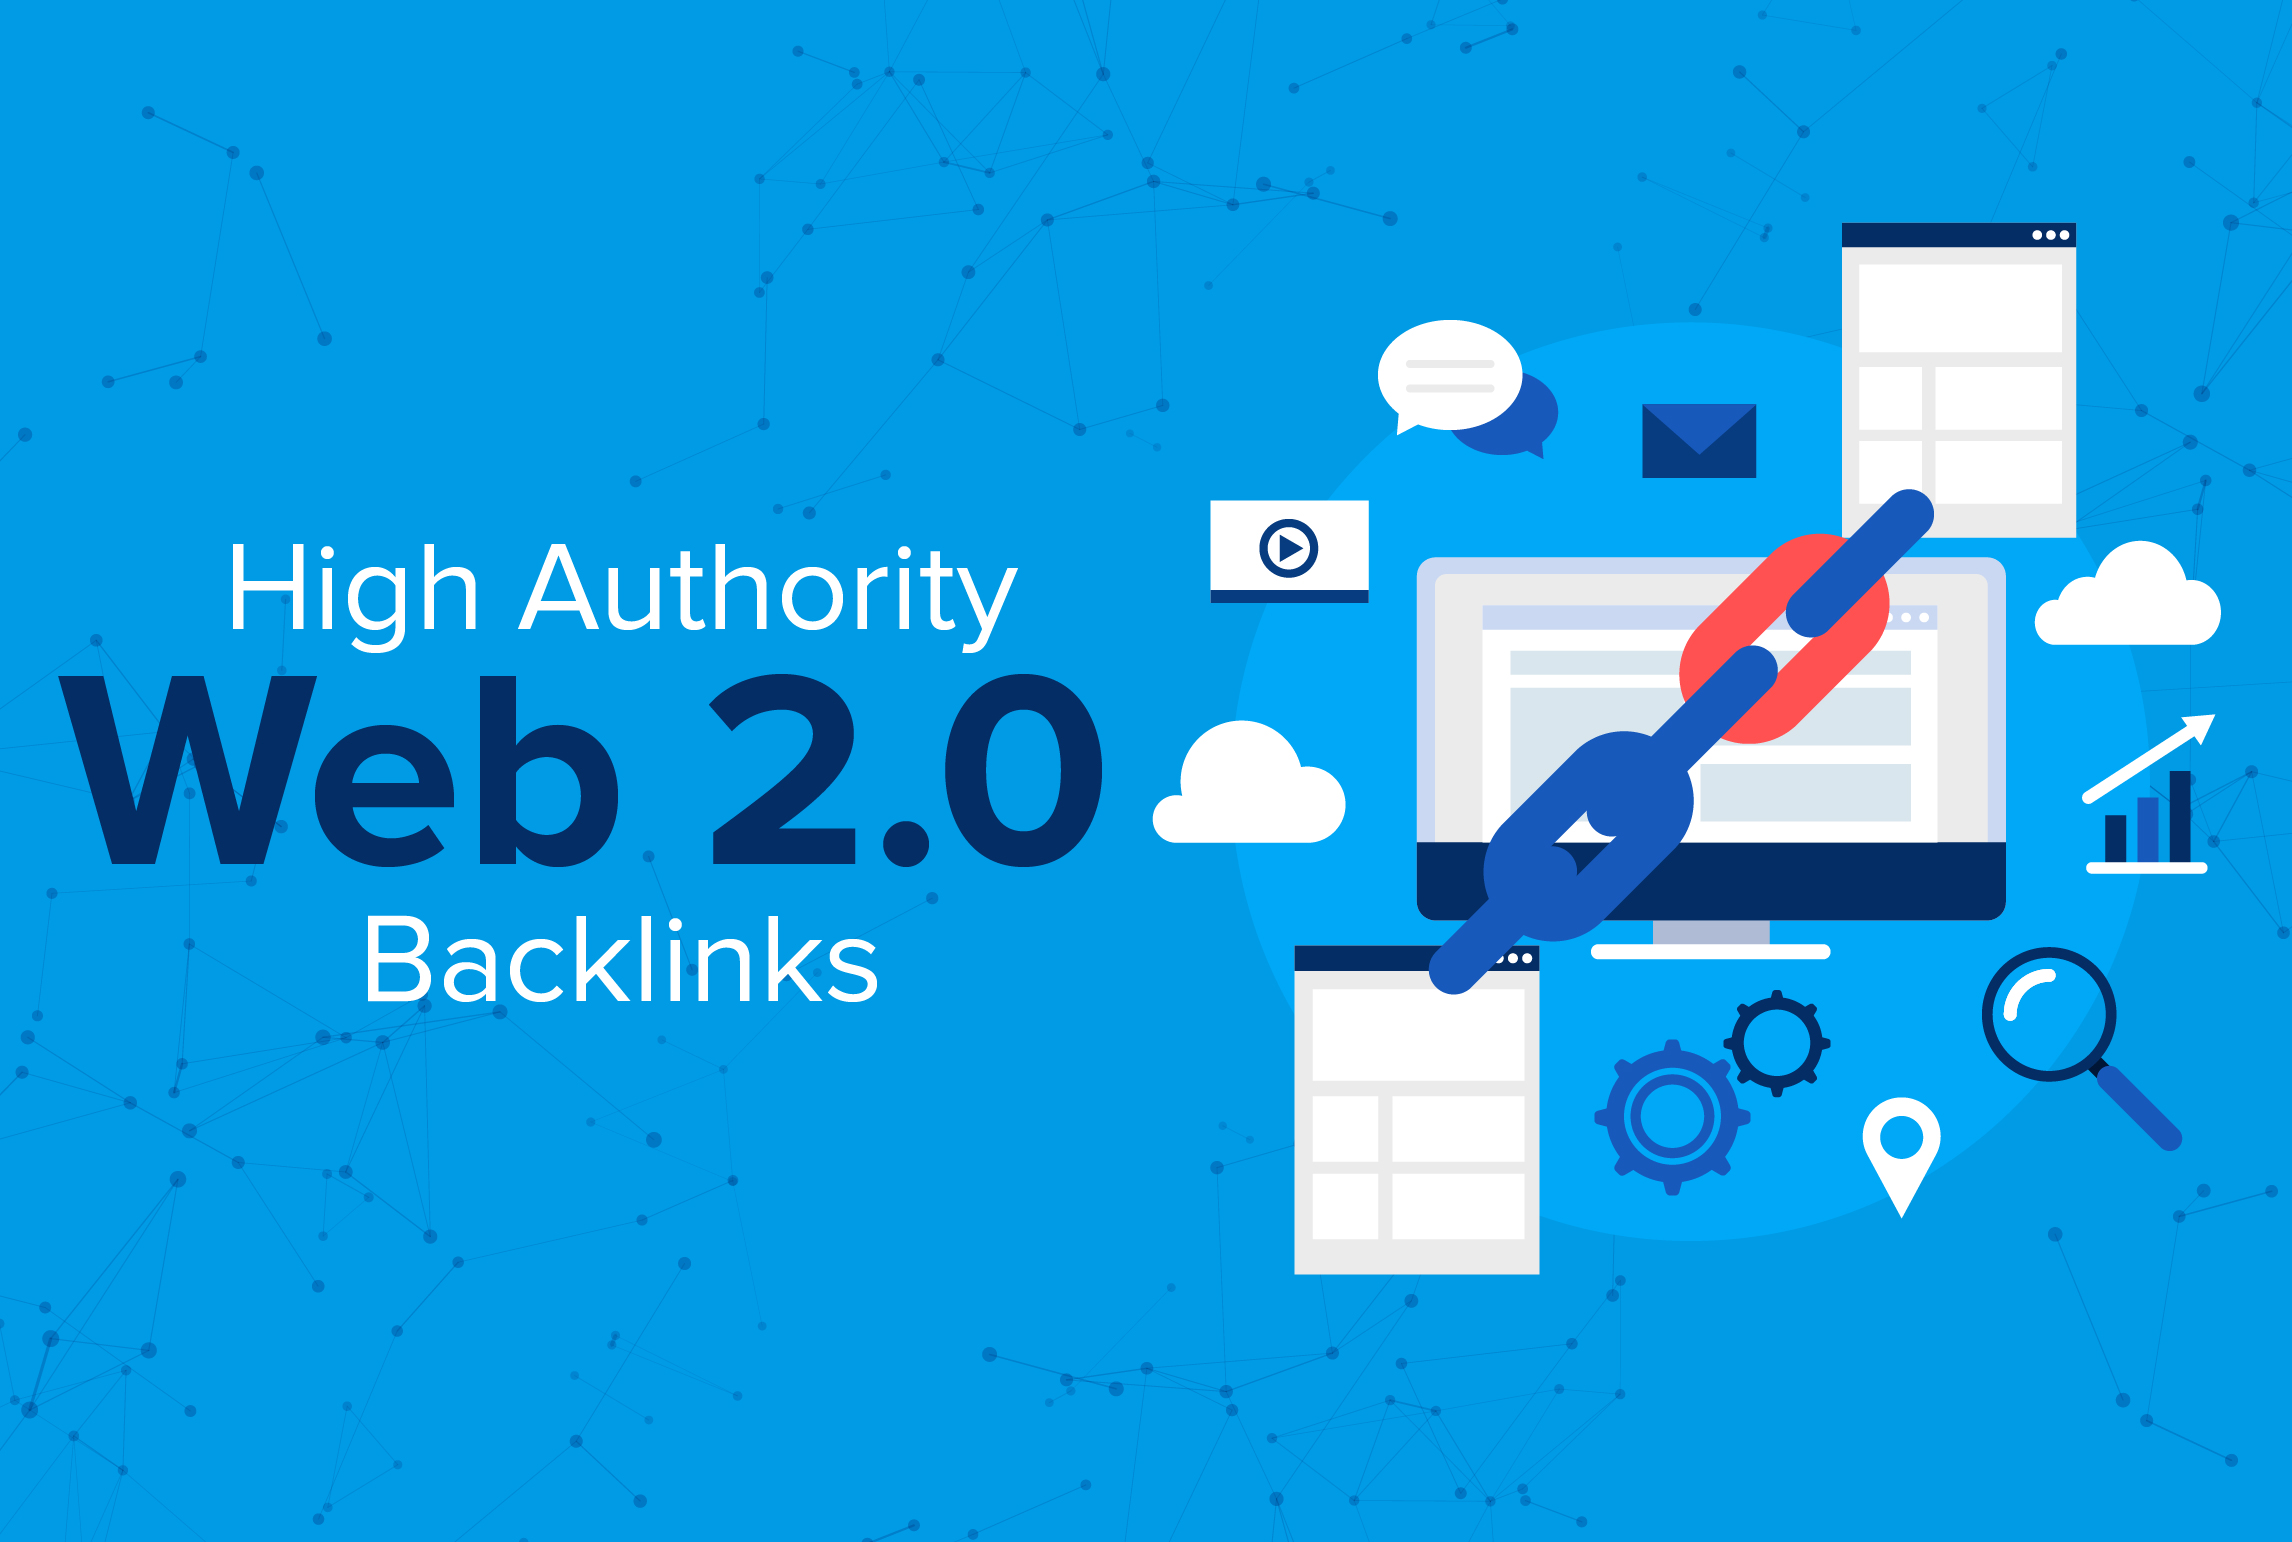 I will manually do 15 HIGH DA Web2.0 backlinks